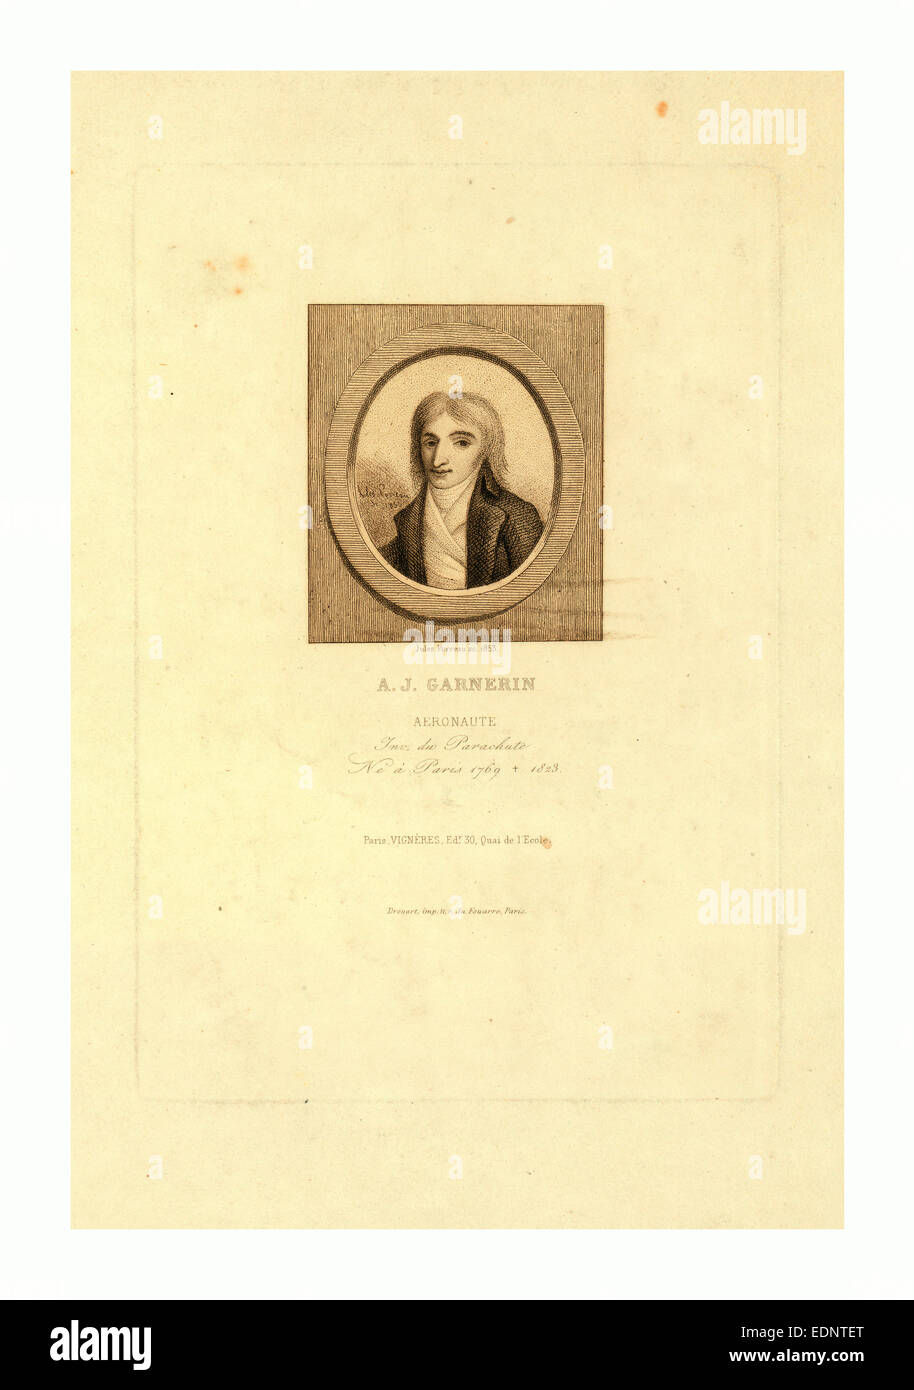 A.J. Garnerin, aeronaut by Jules Porreau, 1853 - Stock Image